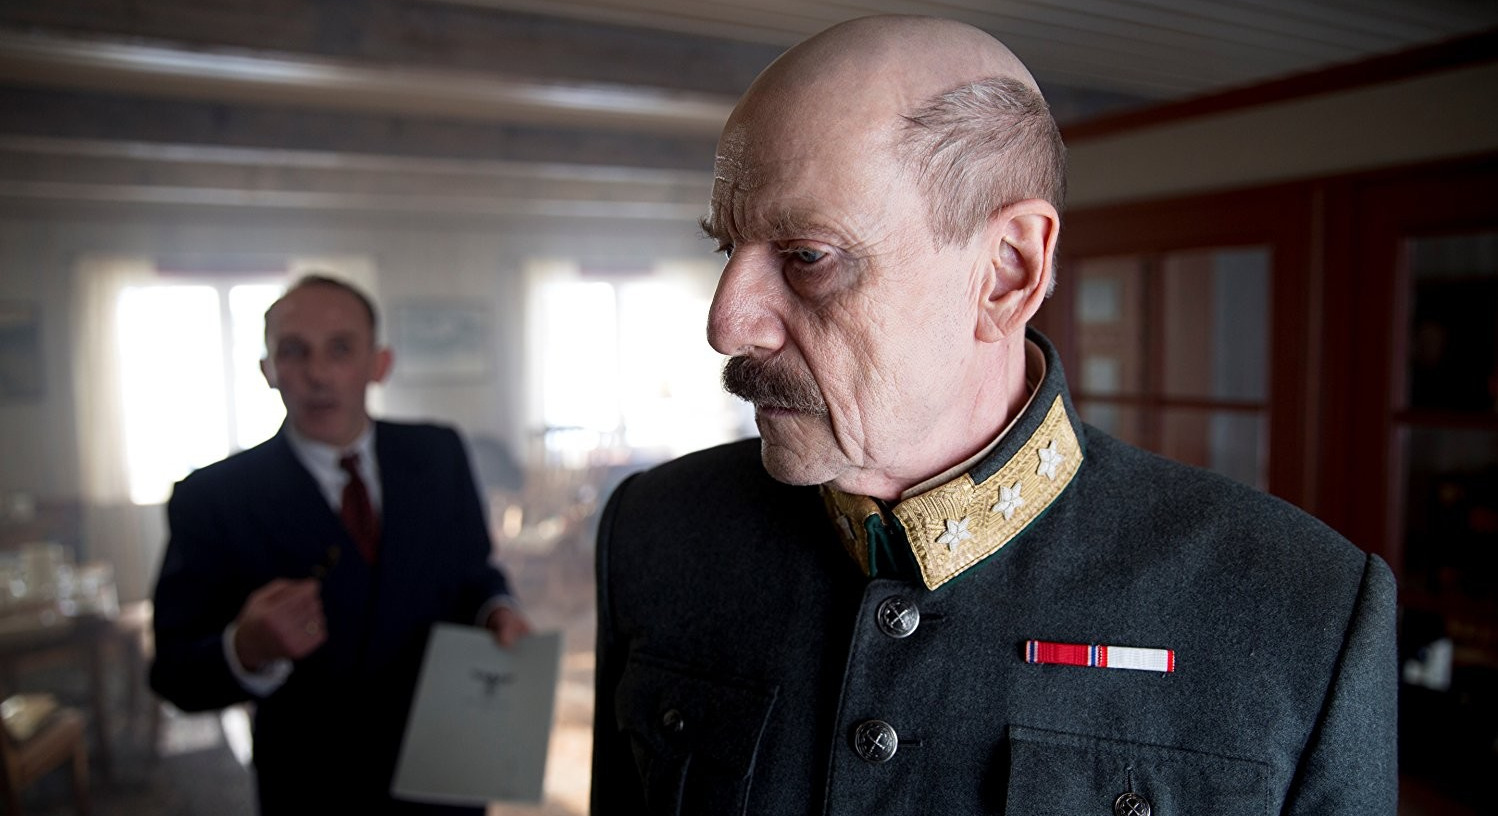 The King's Choice: How to respond when the Nazis offer you protection from the English?